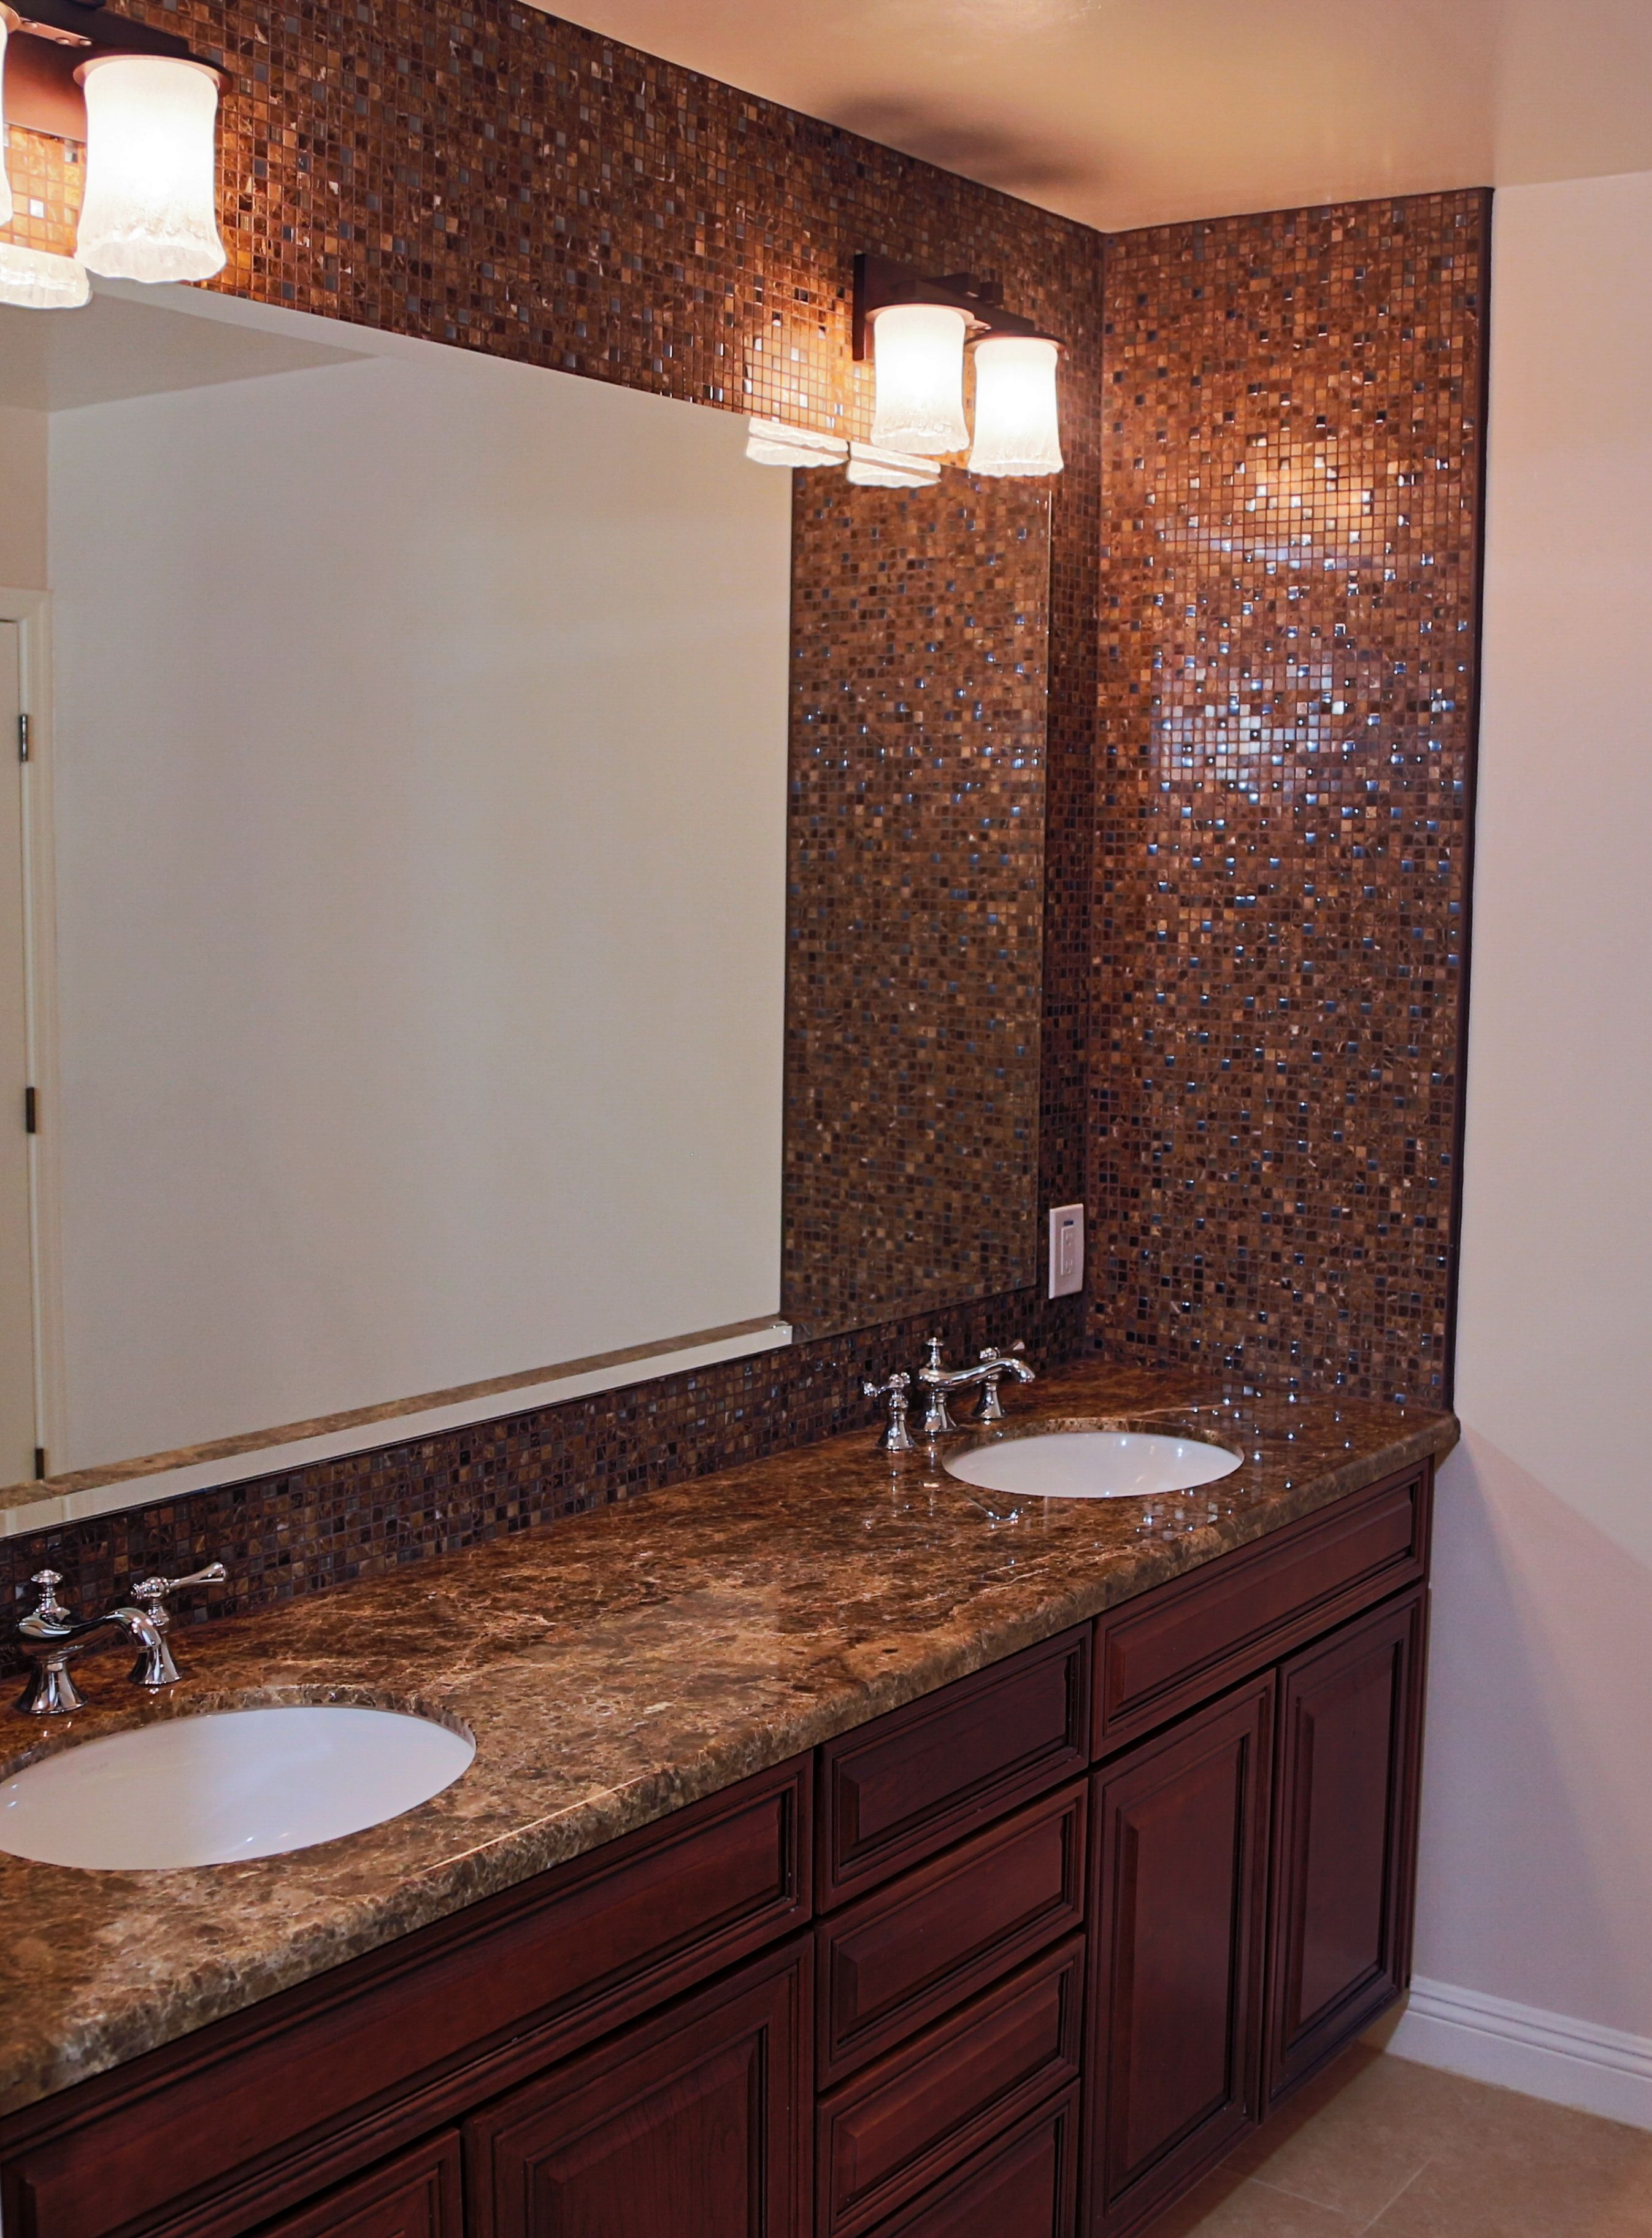 No Matter Your Style The Twd Design Showroom Has Material Selections You Will Love Visit Us Today In Peoria Az Tw Bathrooms Remodel Remodel Dream Bathrooms [ jpg ]